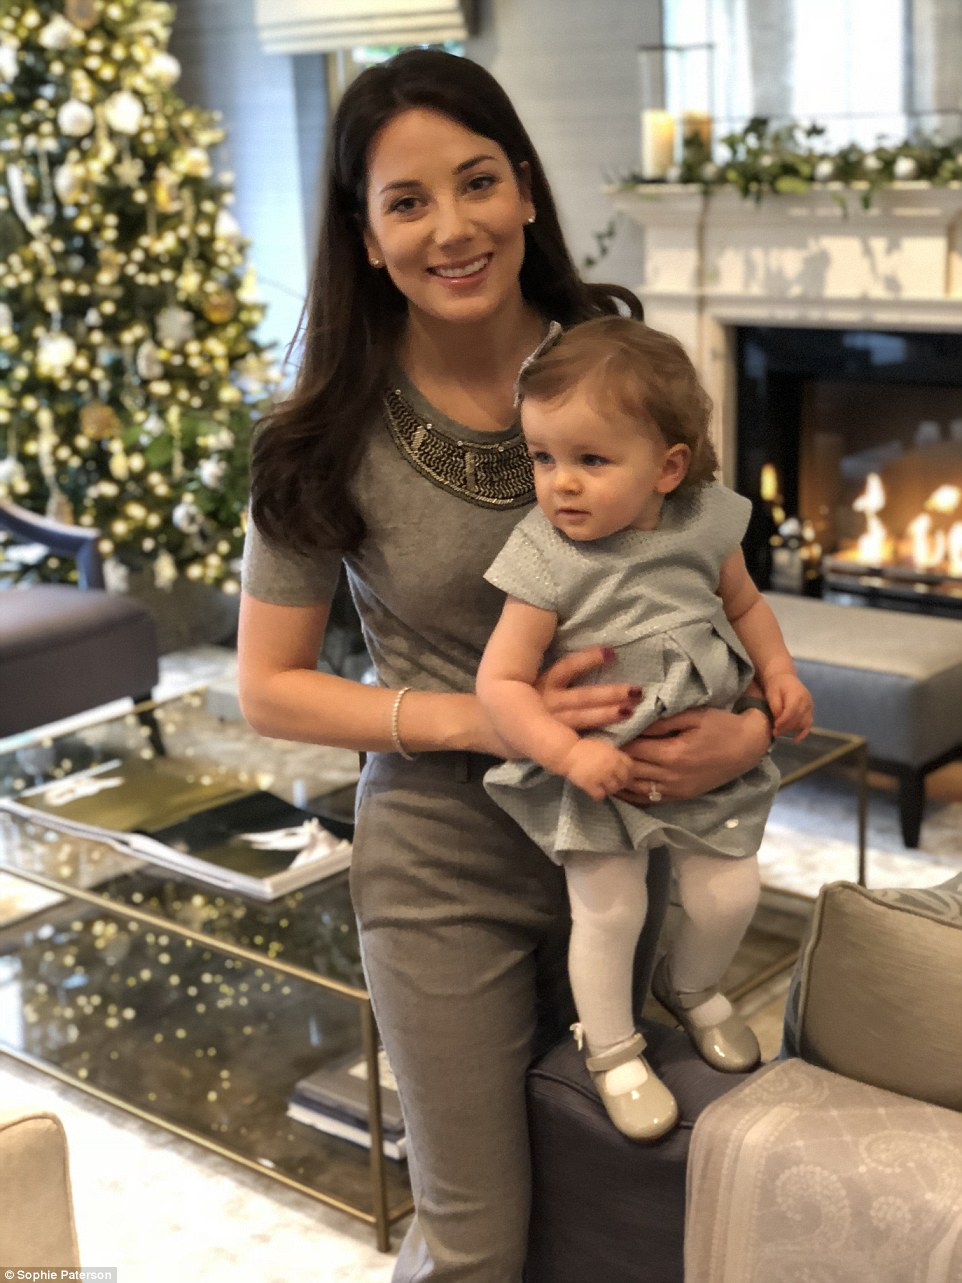 Sophie Paterson, 33, from Surrey, pictured with baby Ava, has opened the doors to her mansion for FEMAIL and revealed how she makes her plush home look so chic at Christmas. Sophie has four trees in her house and says she likes to match the decorations and general theme to the interiors of the room (something she is very well-versed in thanks to her job)